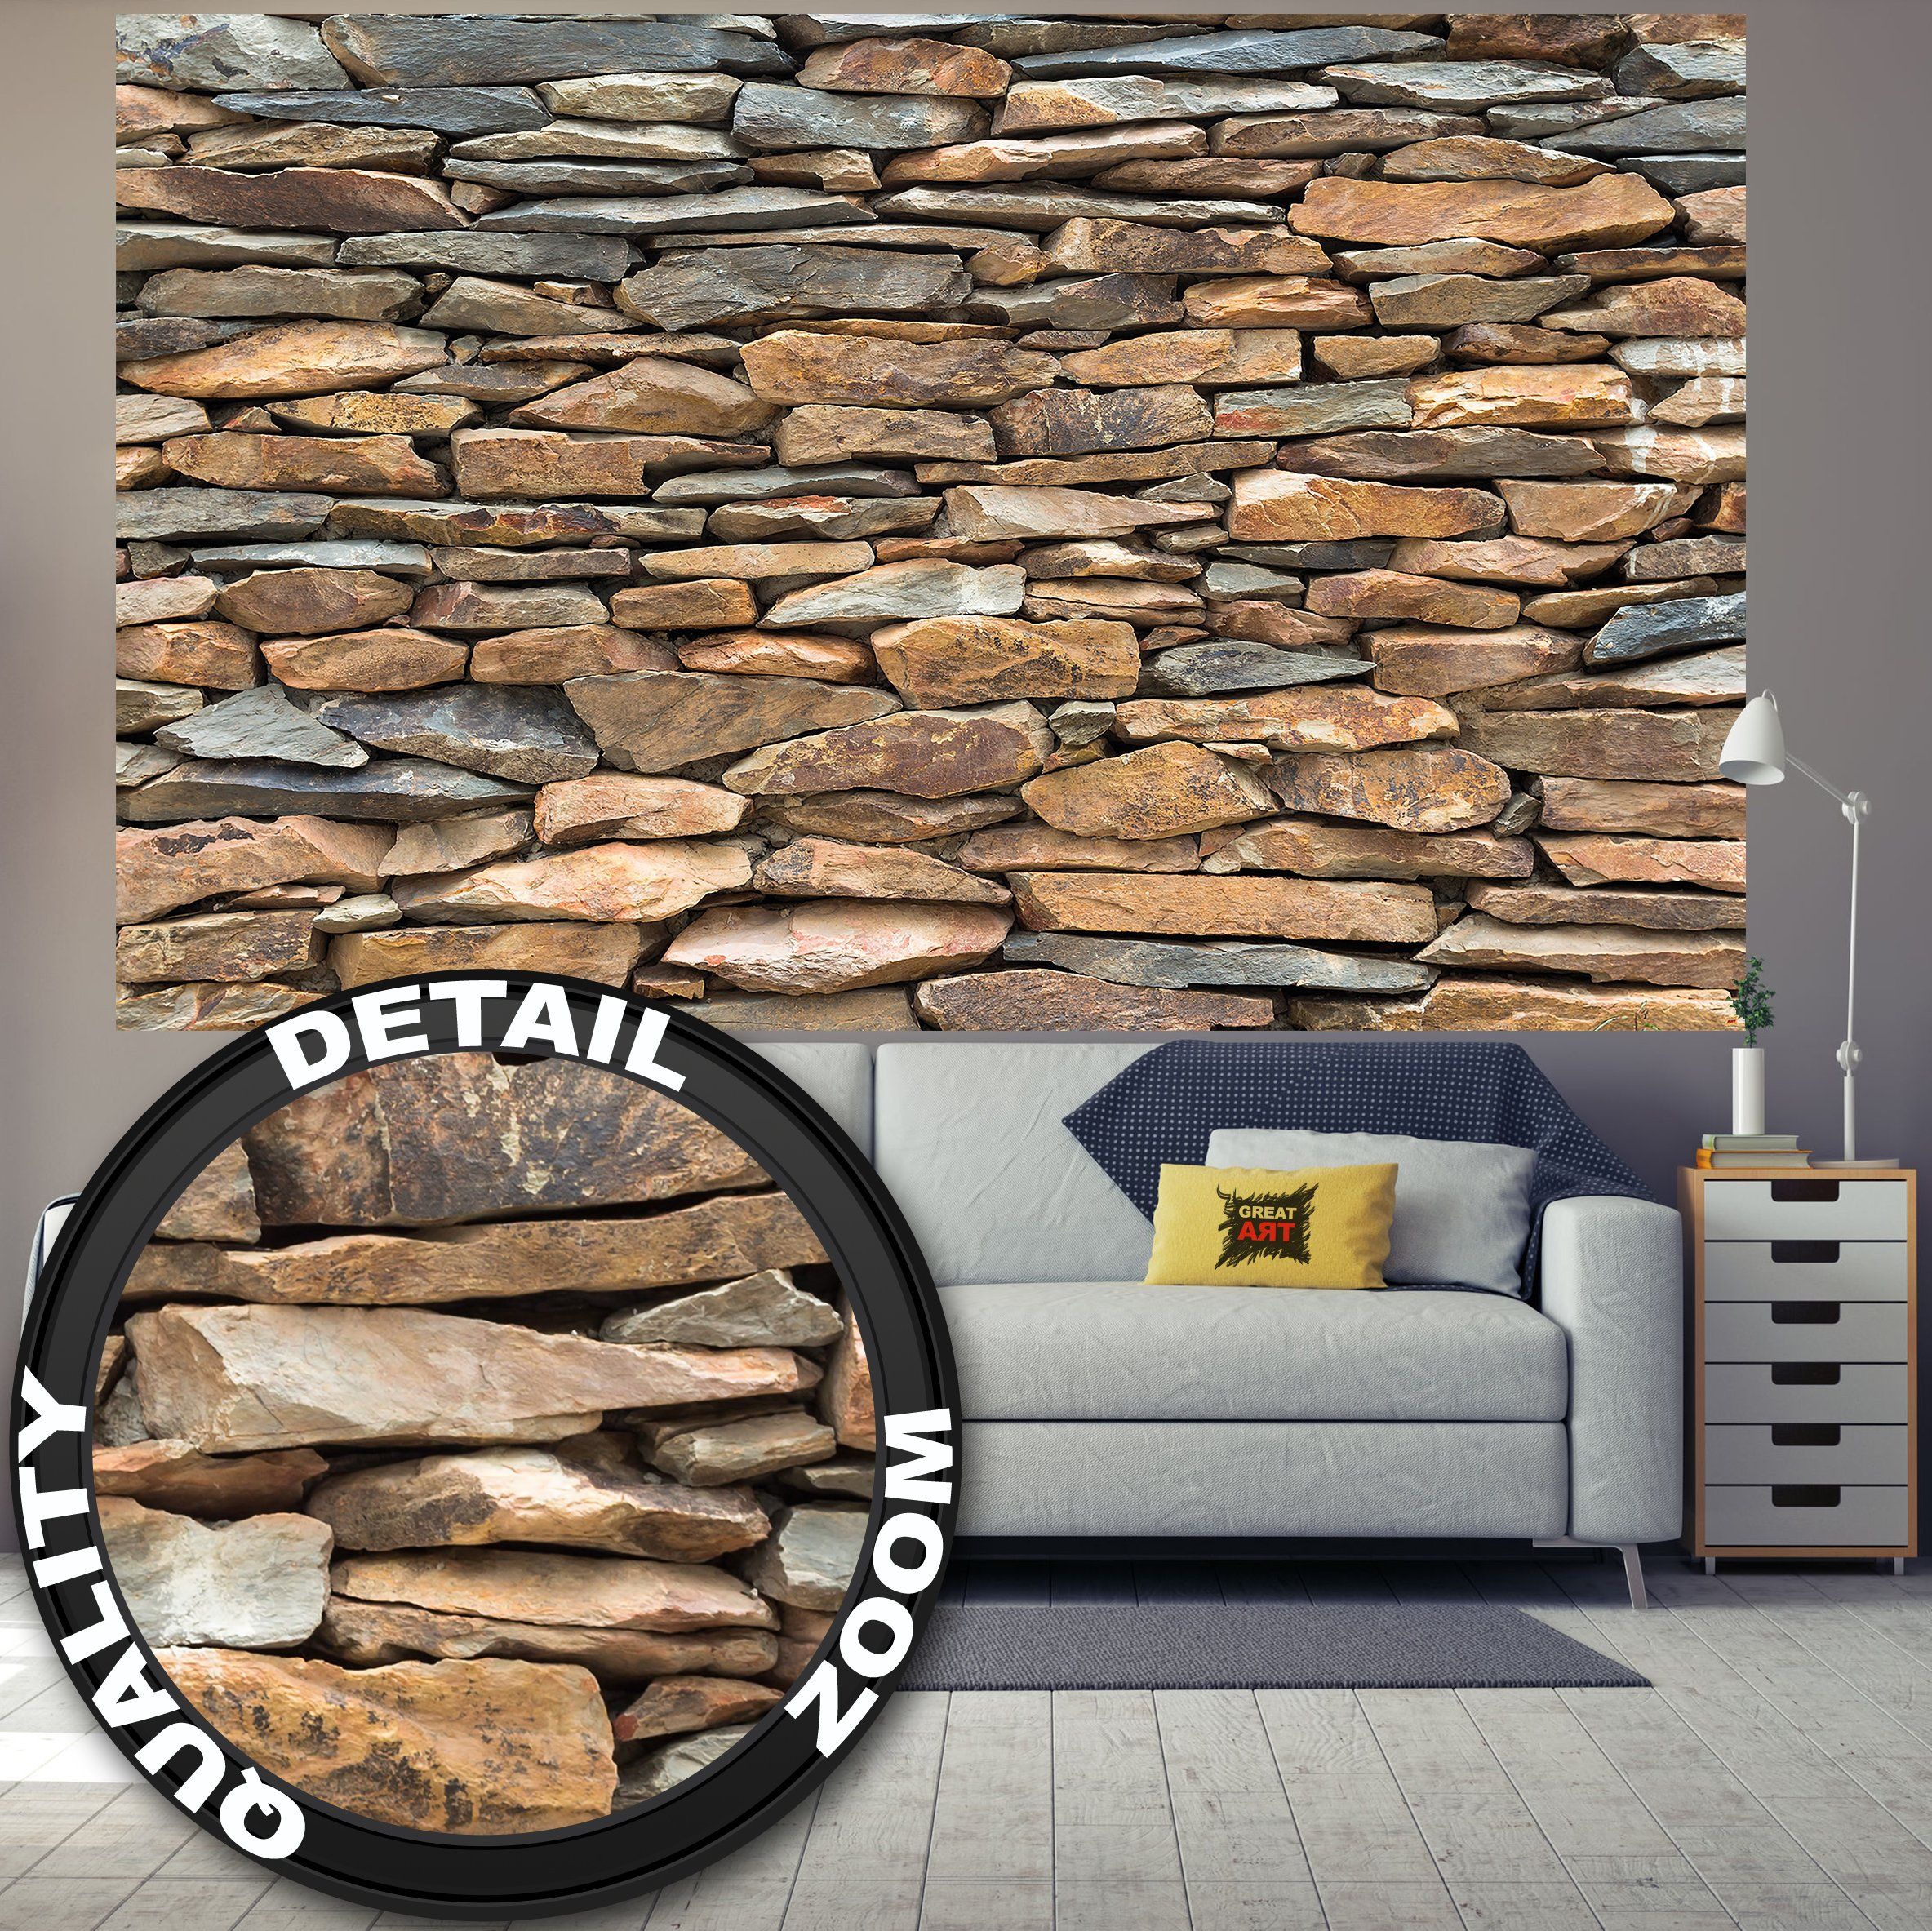 Wallpaper Schiefer Stonewal – wall picture decoration 3D Stone wallpaper Stone pattern Tapestry Stone optic Wall Slate Stone cladding I paperhanging poster wall decor by GREAT ART (82.7x55 Inch)